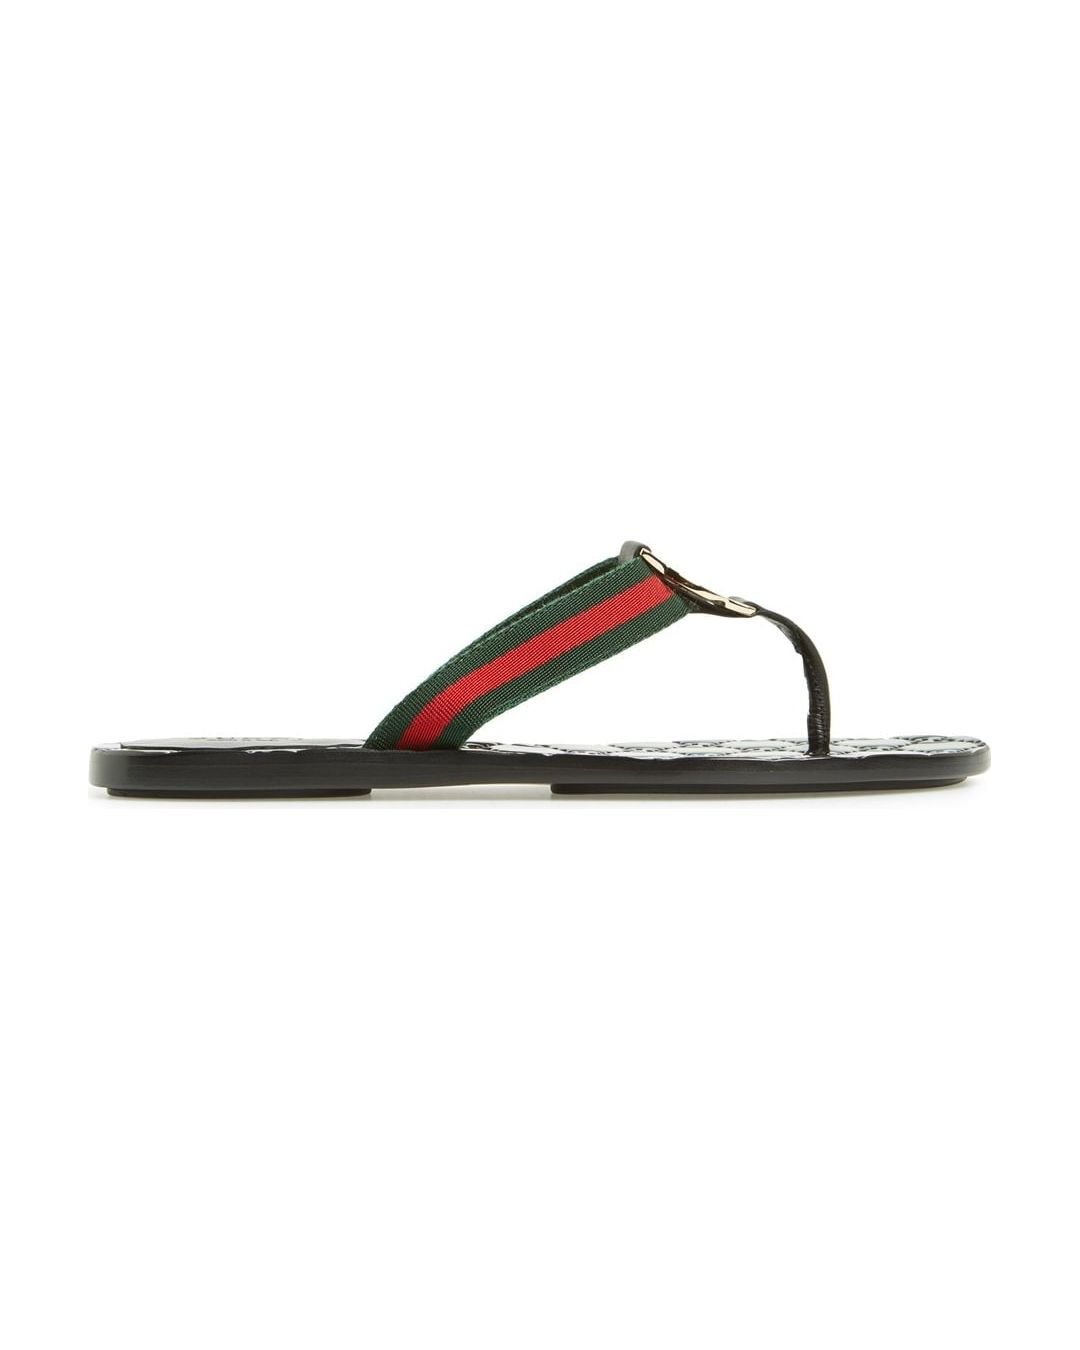 59aa87b03 Where to Buy. FarFetch.com- UK. Gucci GG thong Web sandal ...